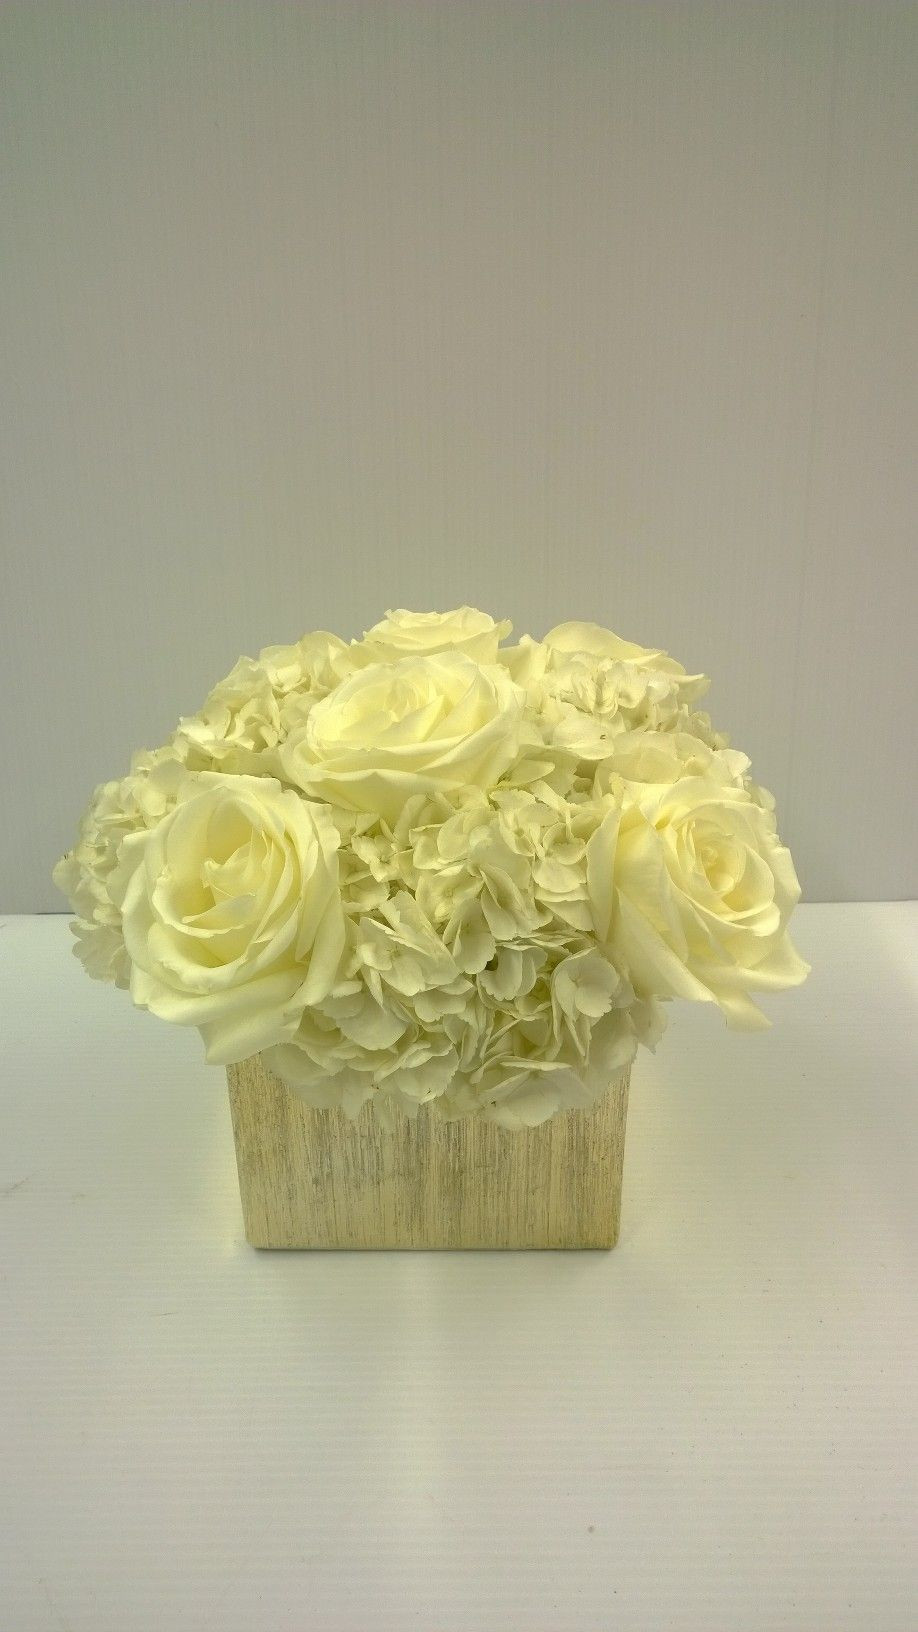 6 x 6 glass cylinder vase of gold vase centerpiece gold ceramic cube with 3 white hydrangeas pertaining to gold vase centerpiece gold ceramic cube with 3 white hydrangeas and 6 white open roses